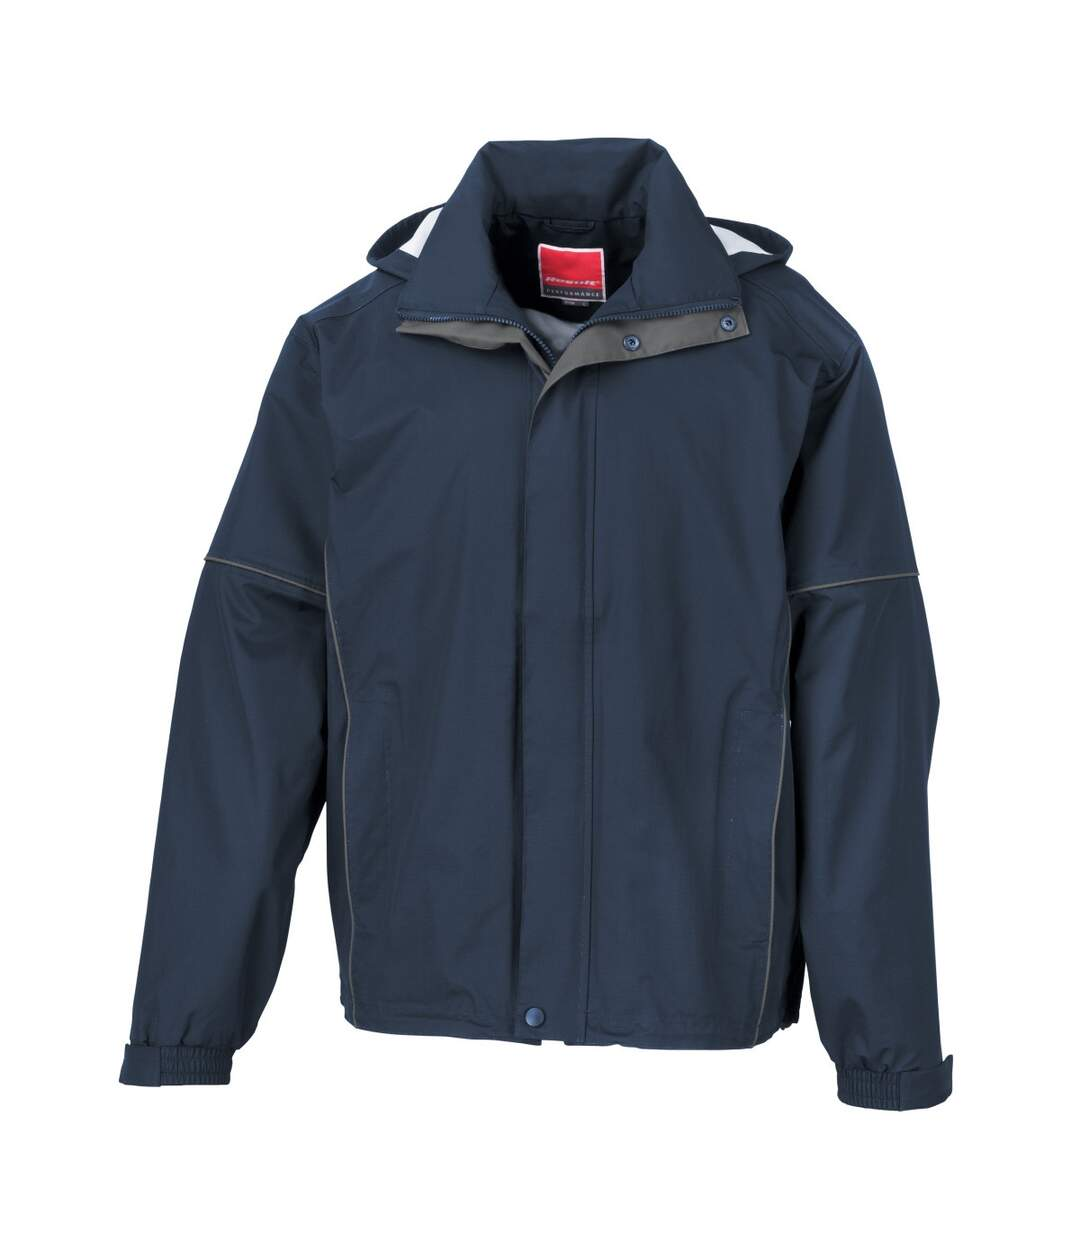 Result Mens Urban Outdoor Fell Lightweight Technical Jacket (Waterproof & Windproof) (Navy Blue) - UTBC3050